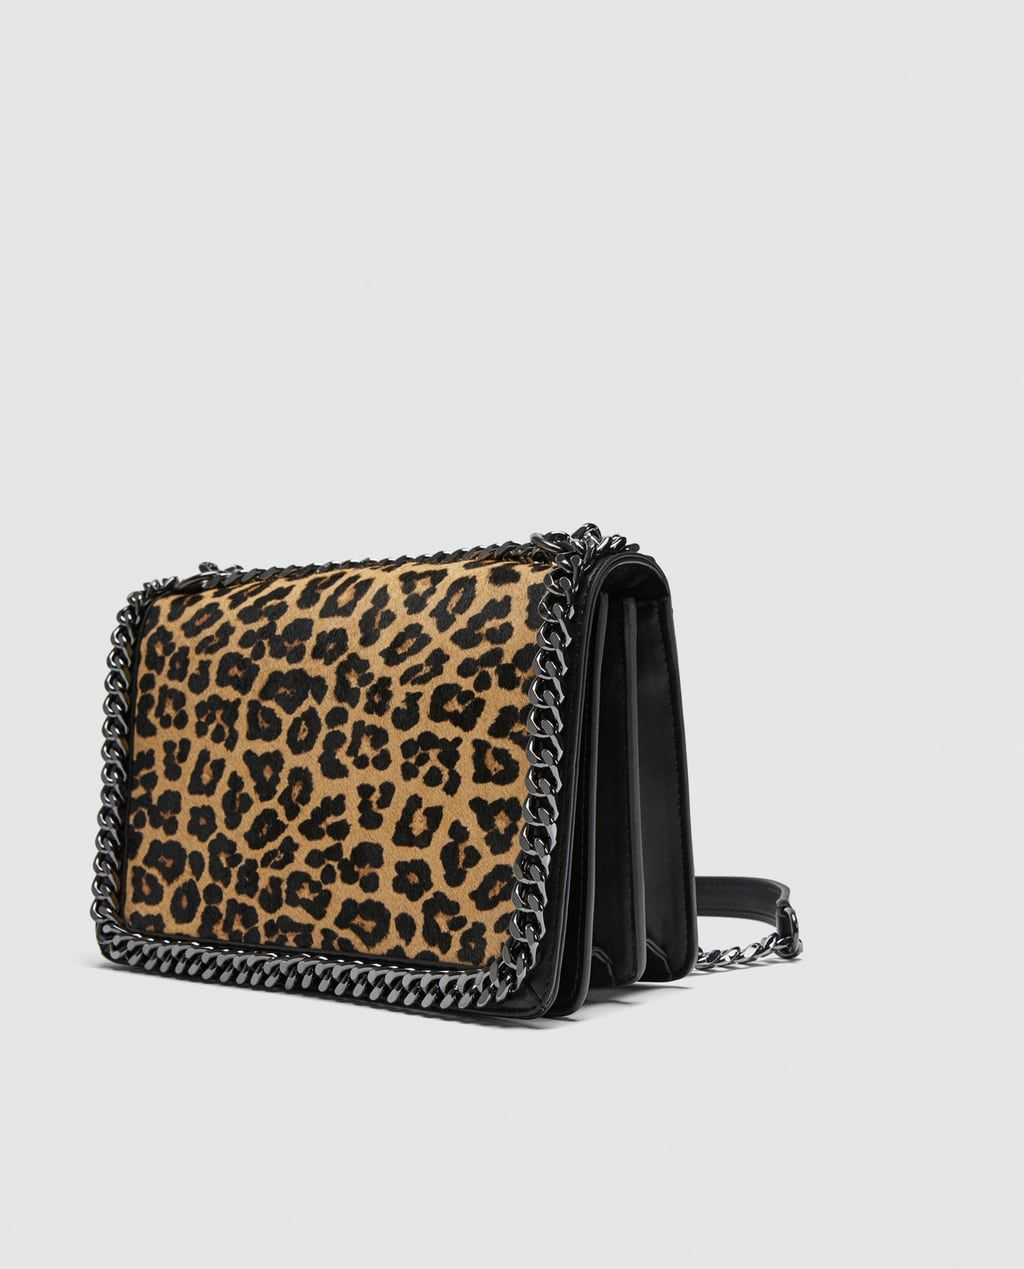 2af4410921b8 Image 4 of LEOPARD PRINT LEATHER CROSSBODY BAG from Zara | Shopping ...